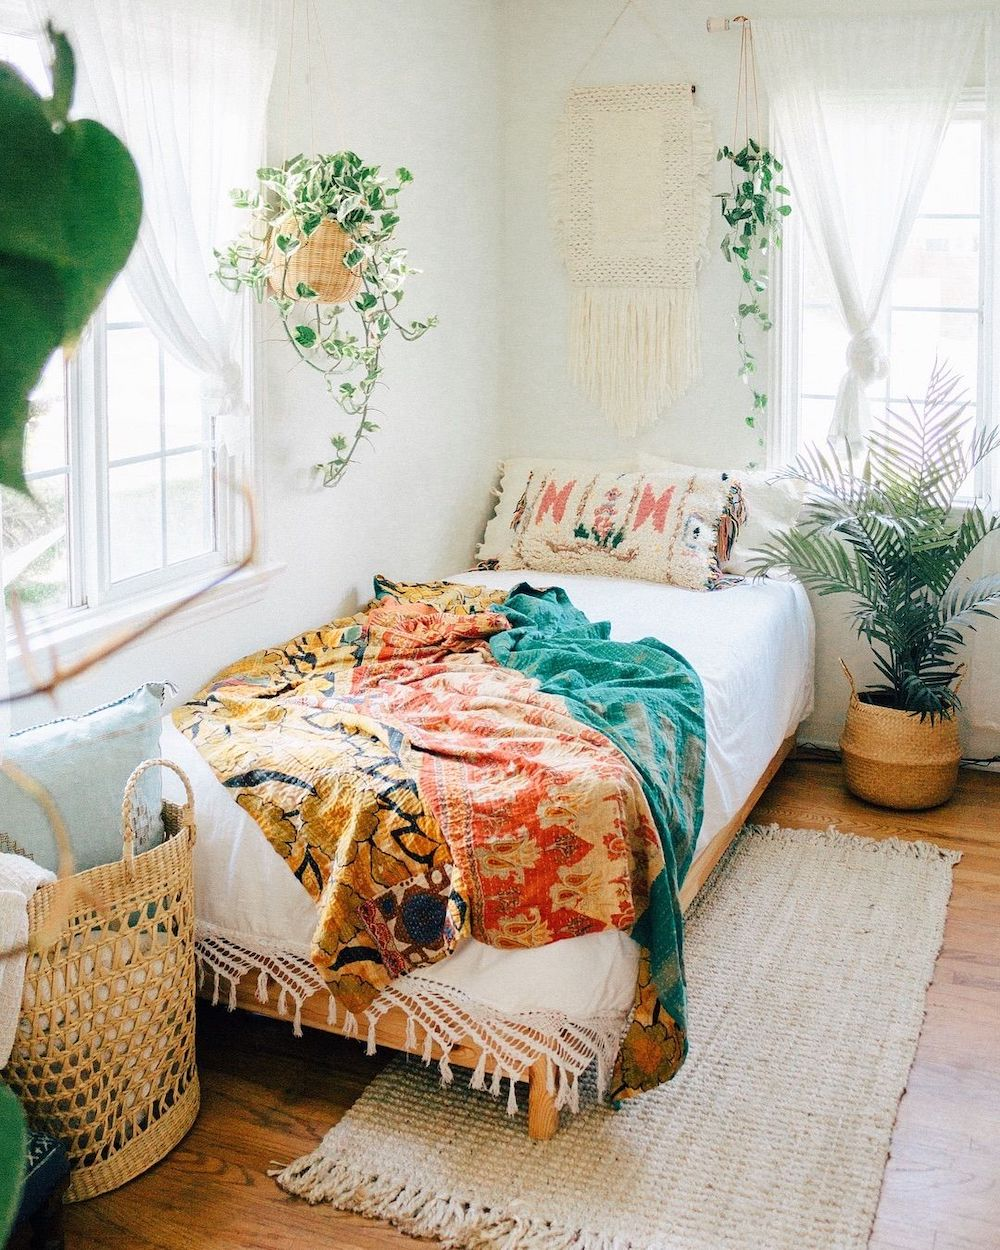 Bohemian Bedroom via @saratoufali